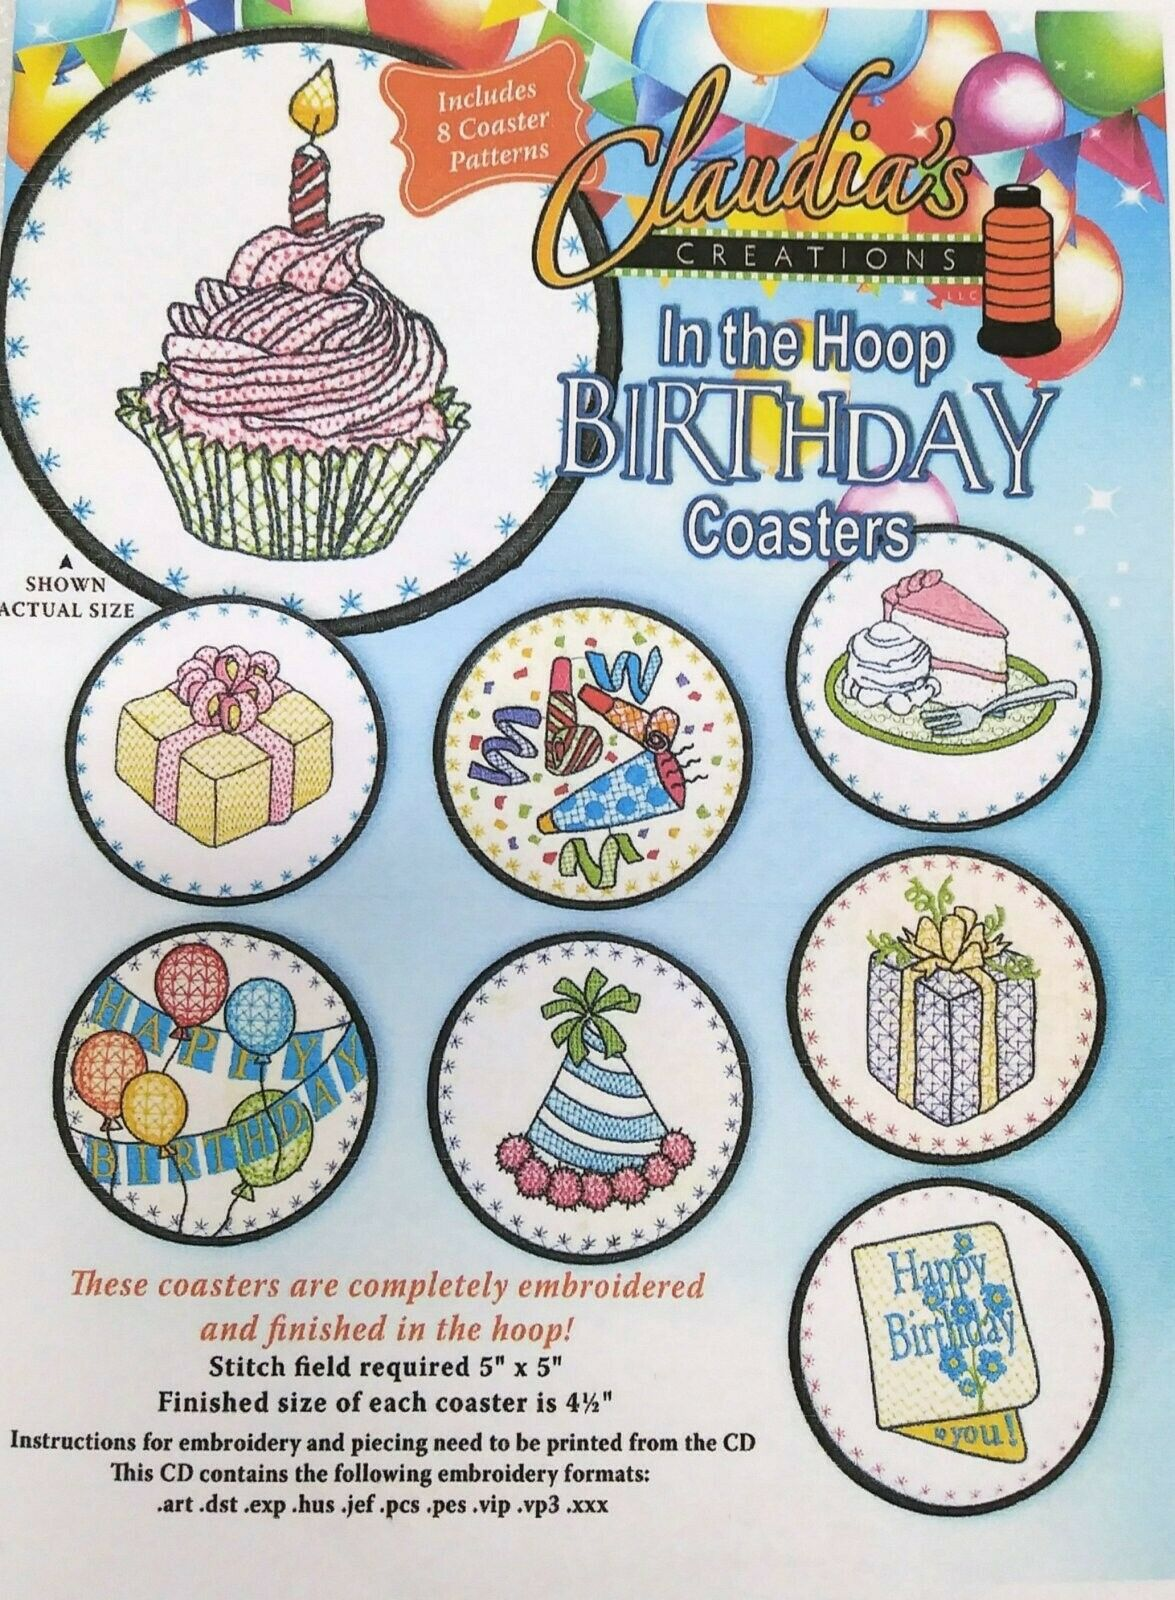 CLAUDIA'S CREATIONS IN THE HOOP BIRTHDAY COASTERS MACHINE EMBROIDERY CD